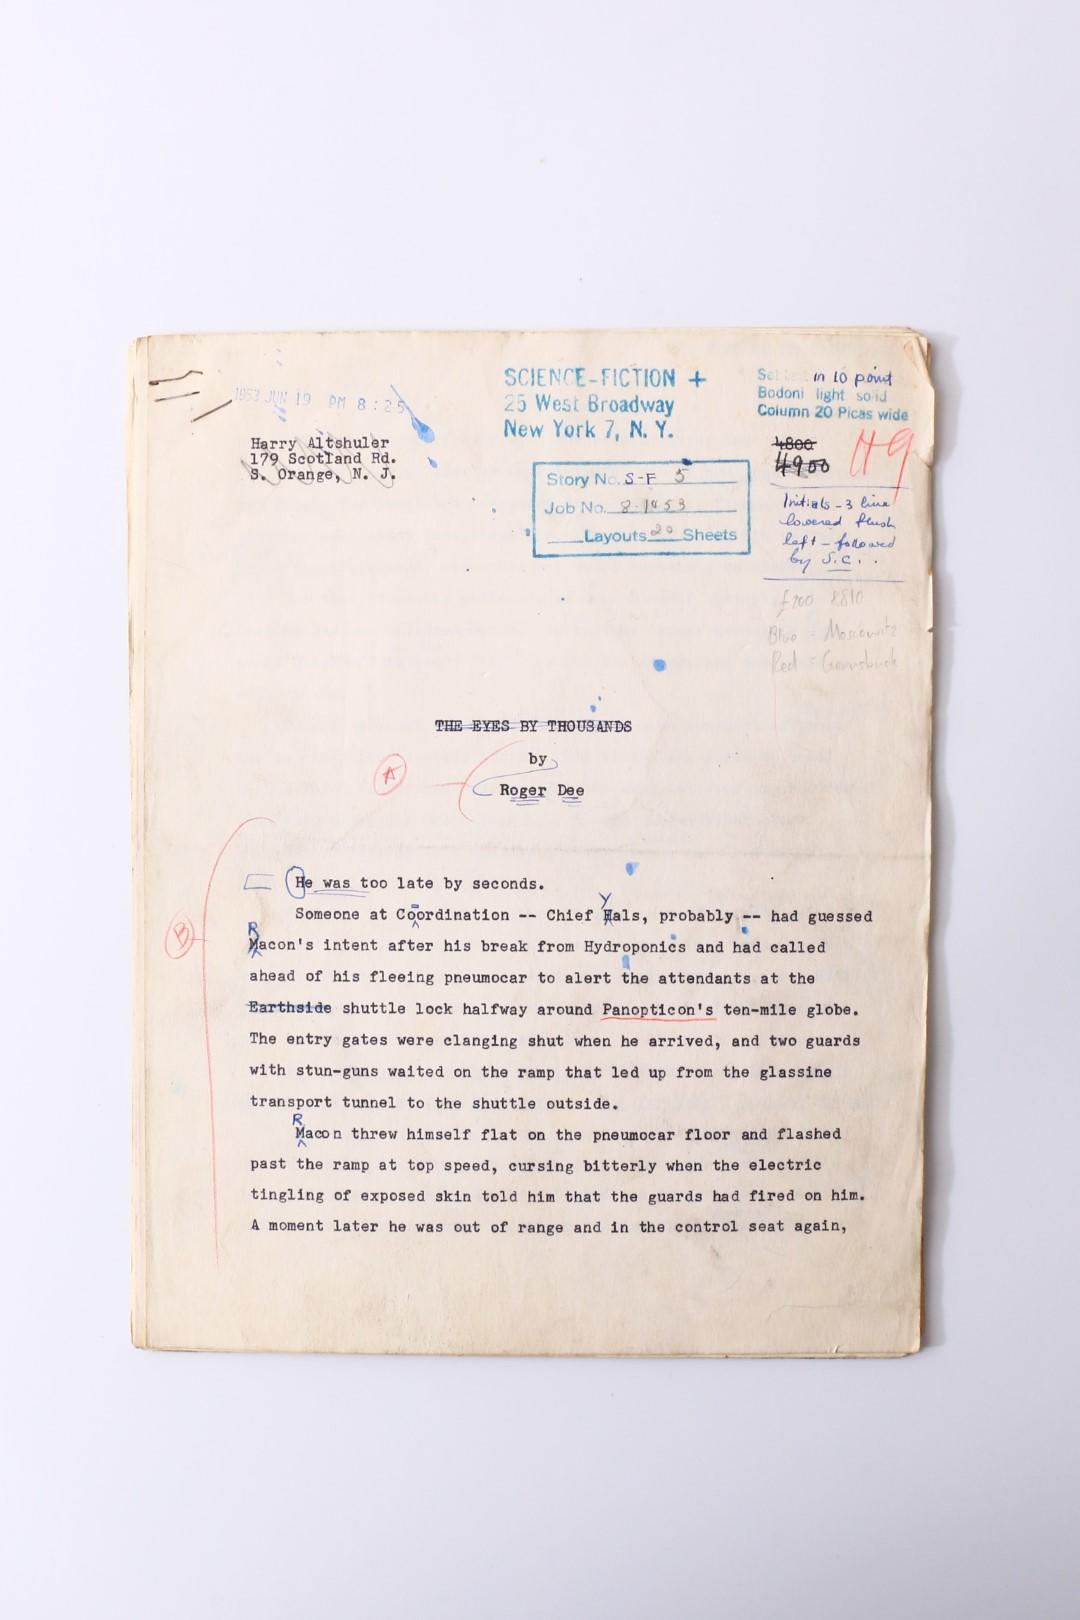 Roger Dee - The Eyes by Thousands [Worlds Within Worlds] Original Manuscript - Science-Fiction Plus, n.d. [1953], Manuscript.